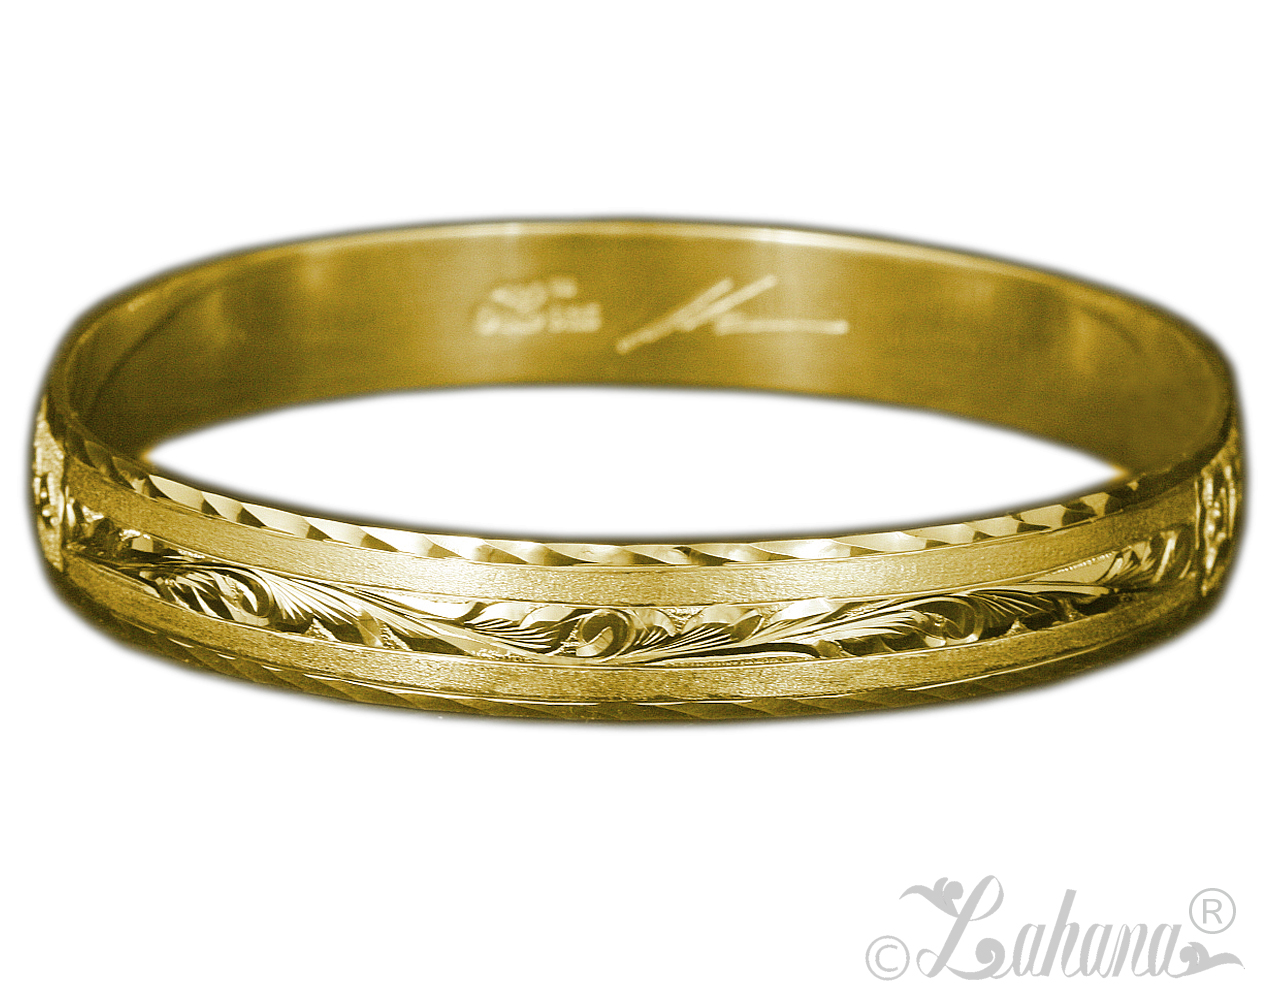 14k-modern-design-customized-bangle-wm2.jpg